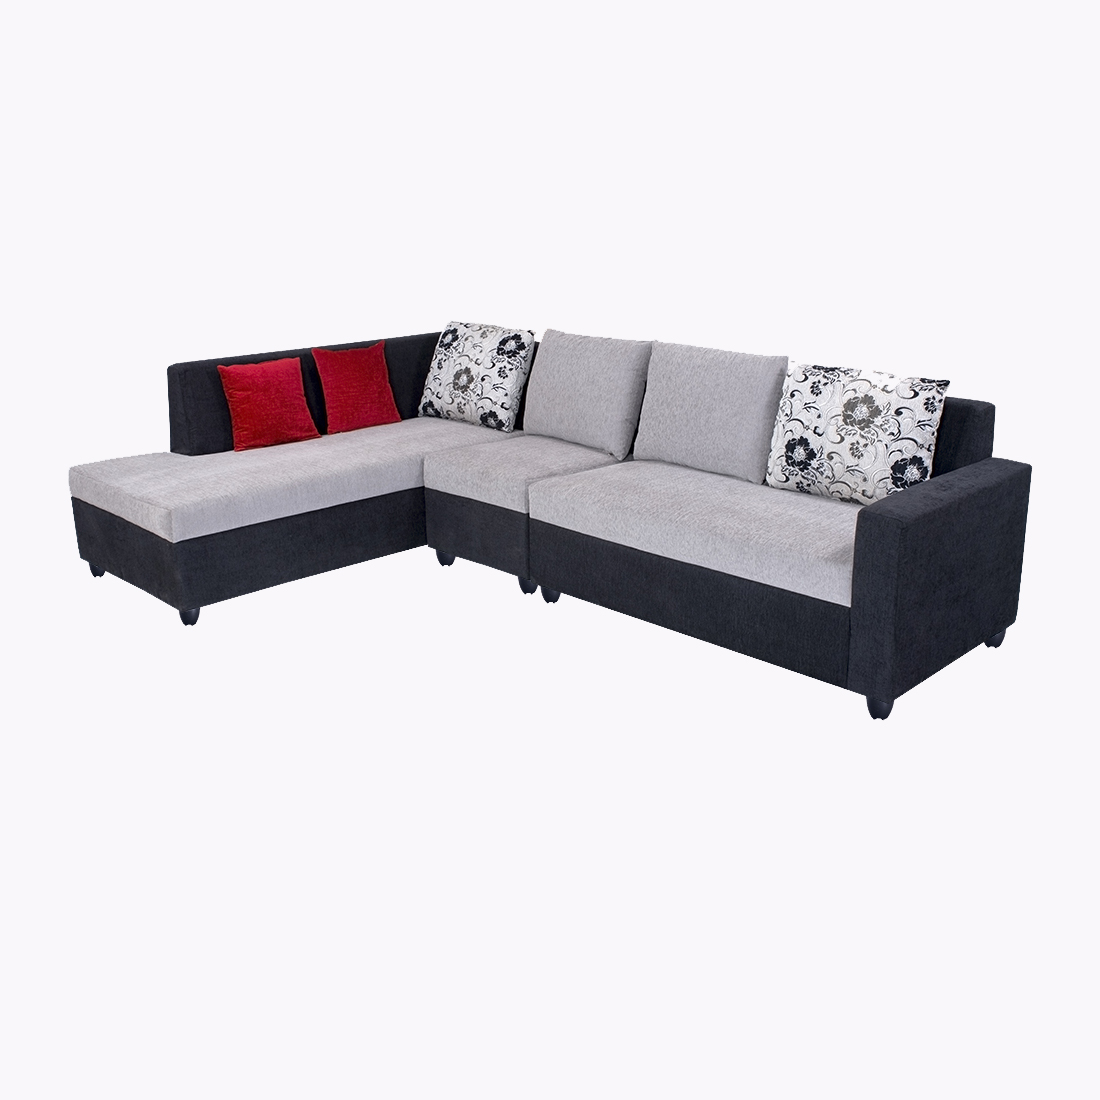 Bharat Lifestyle Nano L-Shape Fabric Sofa Set Black Grey (2+1+D ...